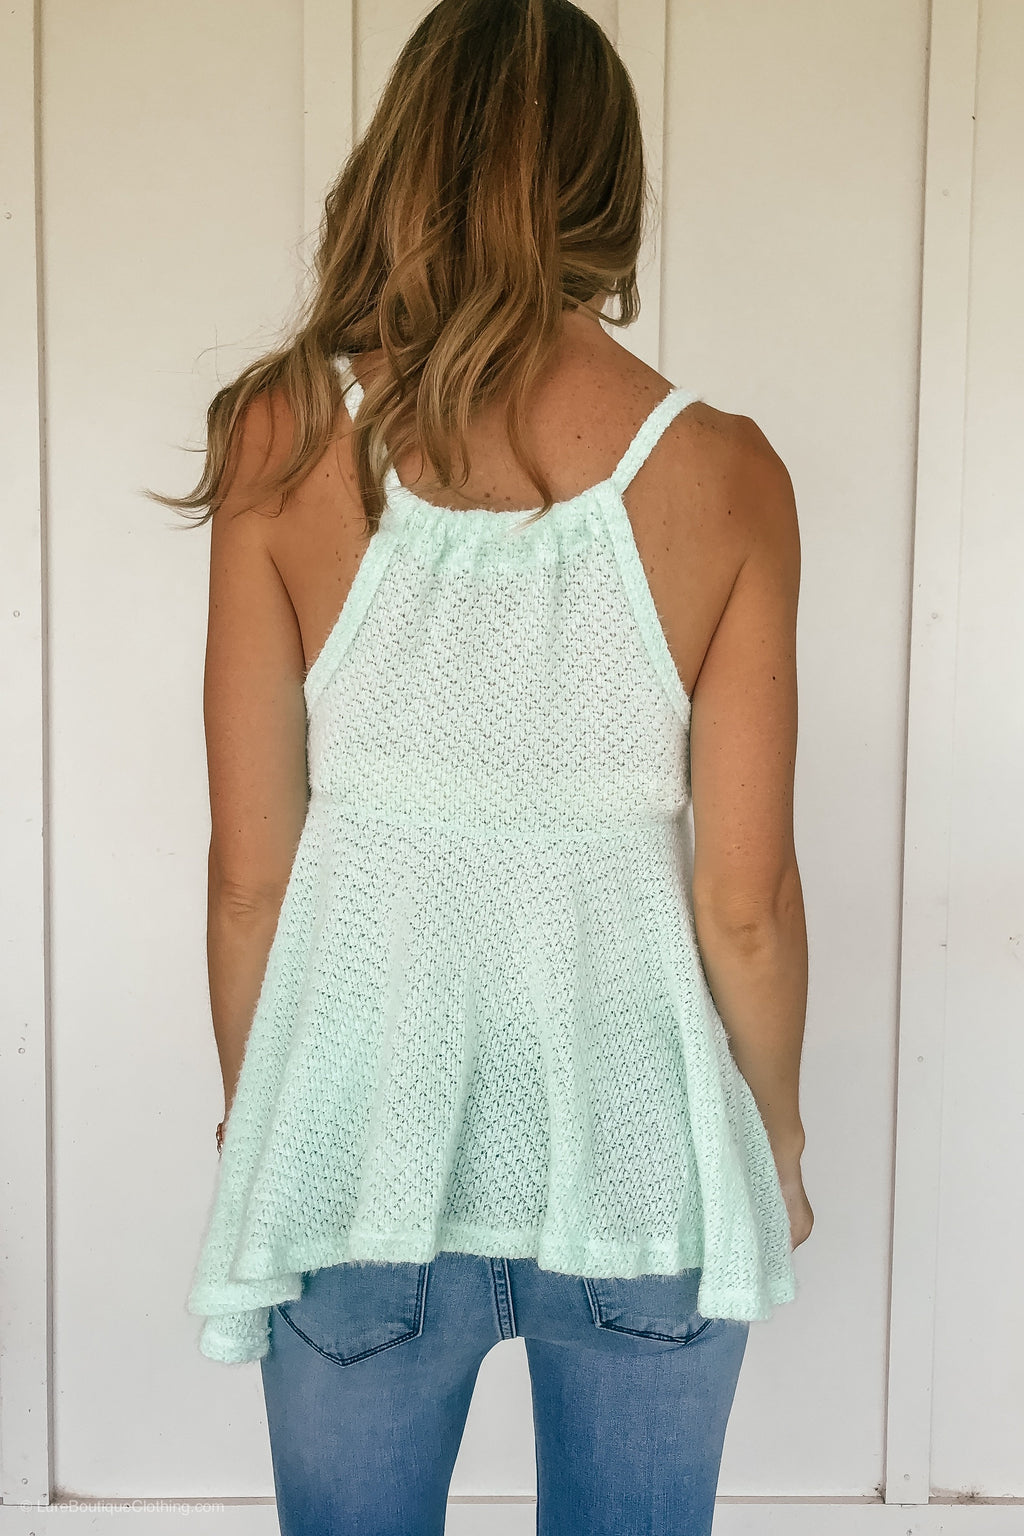 Flirty Flared Cami Top in Mint - LURE Boutique